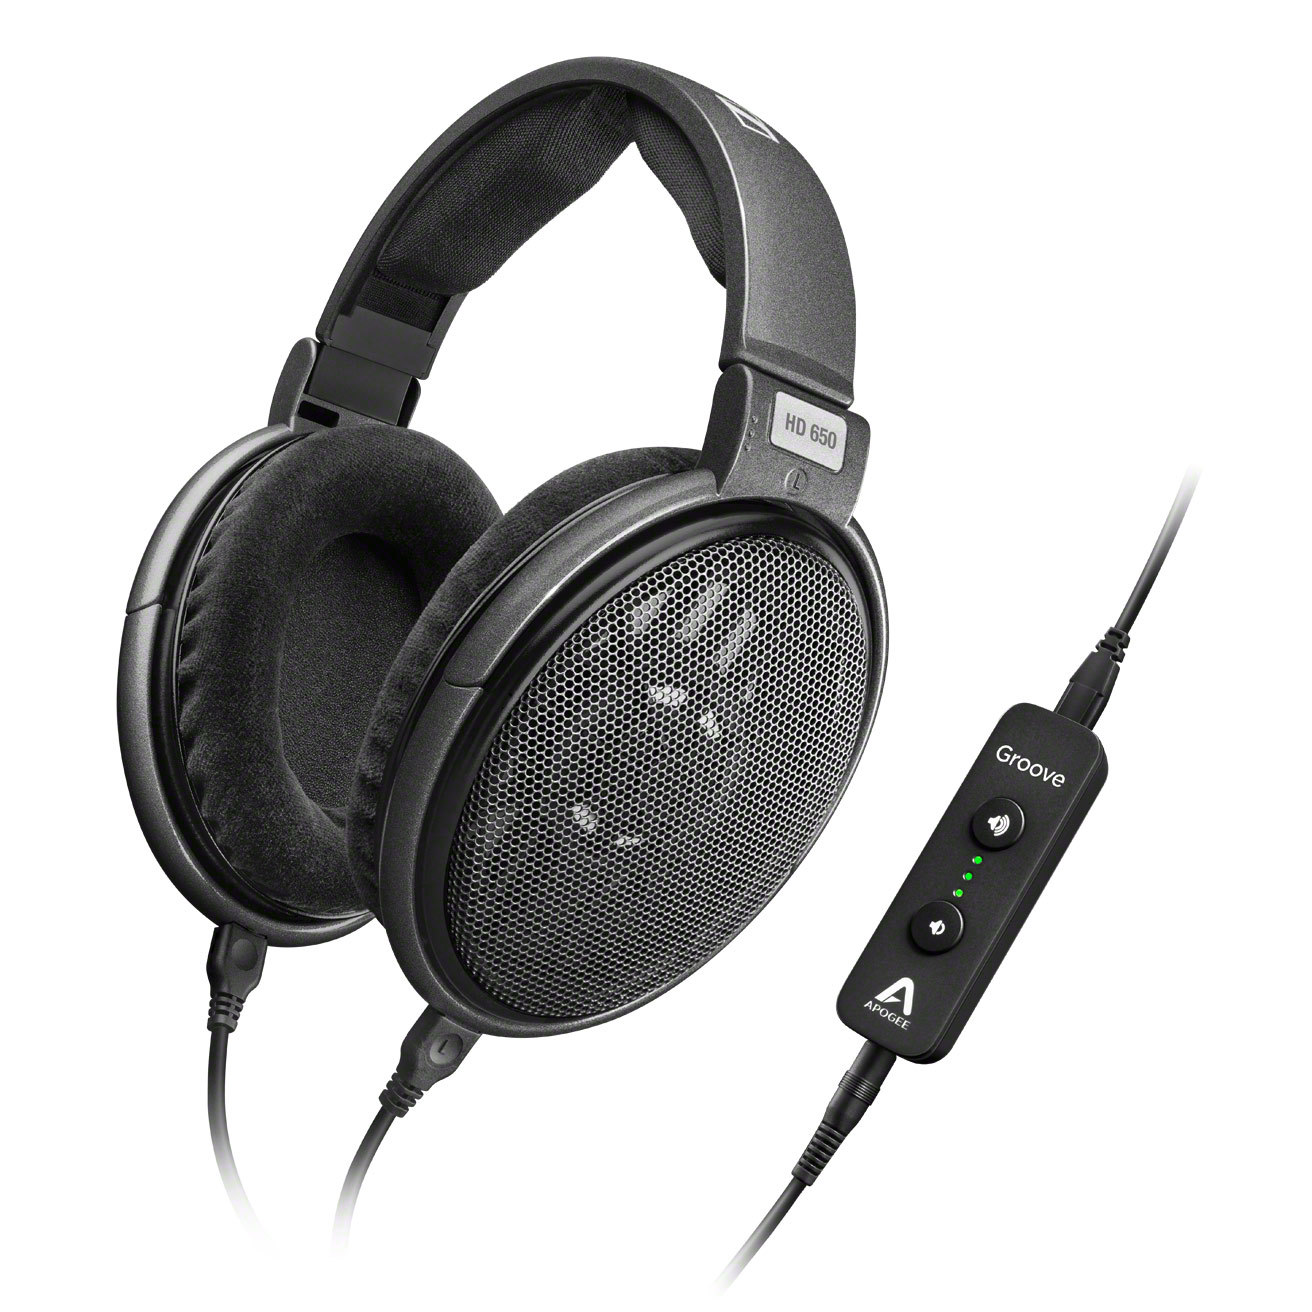 Sennheiser HD 650 Over-Ear 3.5mm Wired Professional Headphones + Apogee GROOVE Portable USB DAC and Headphone Amplifier